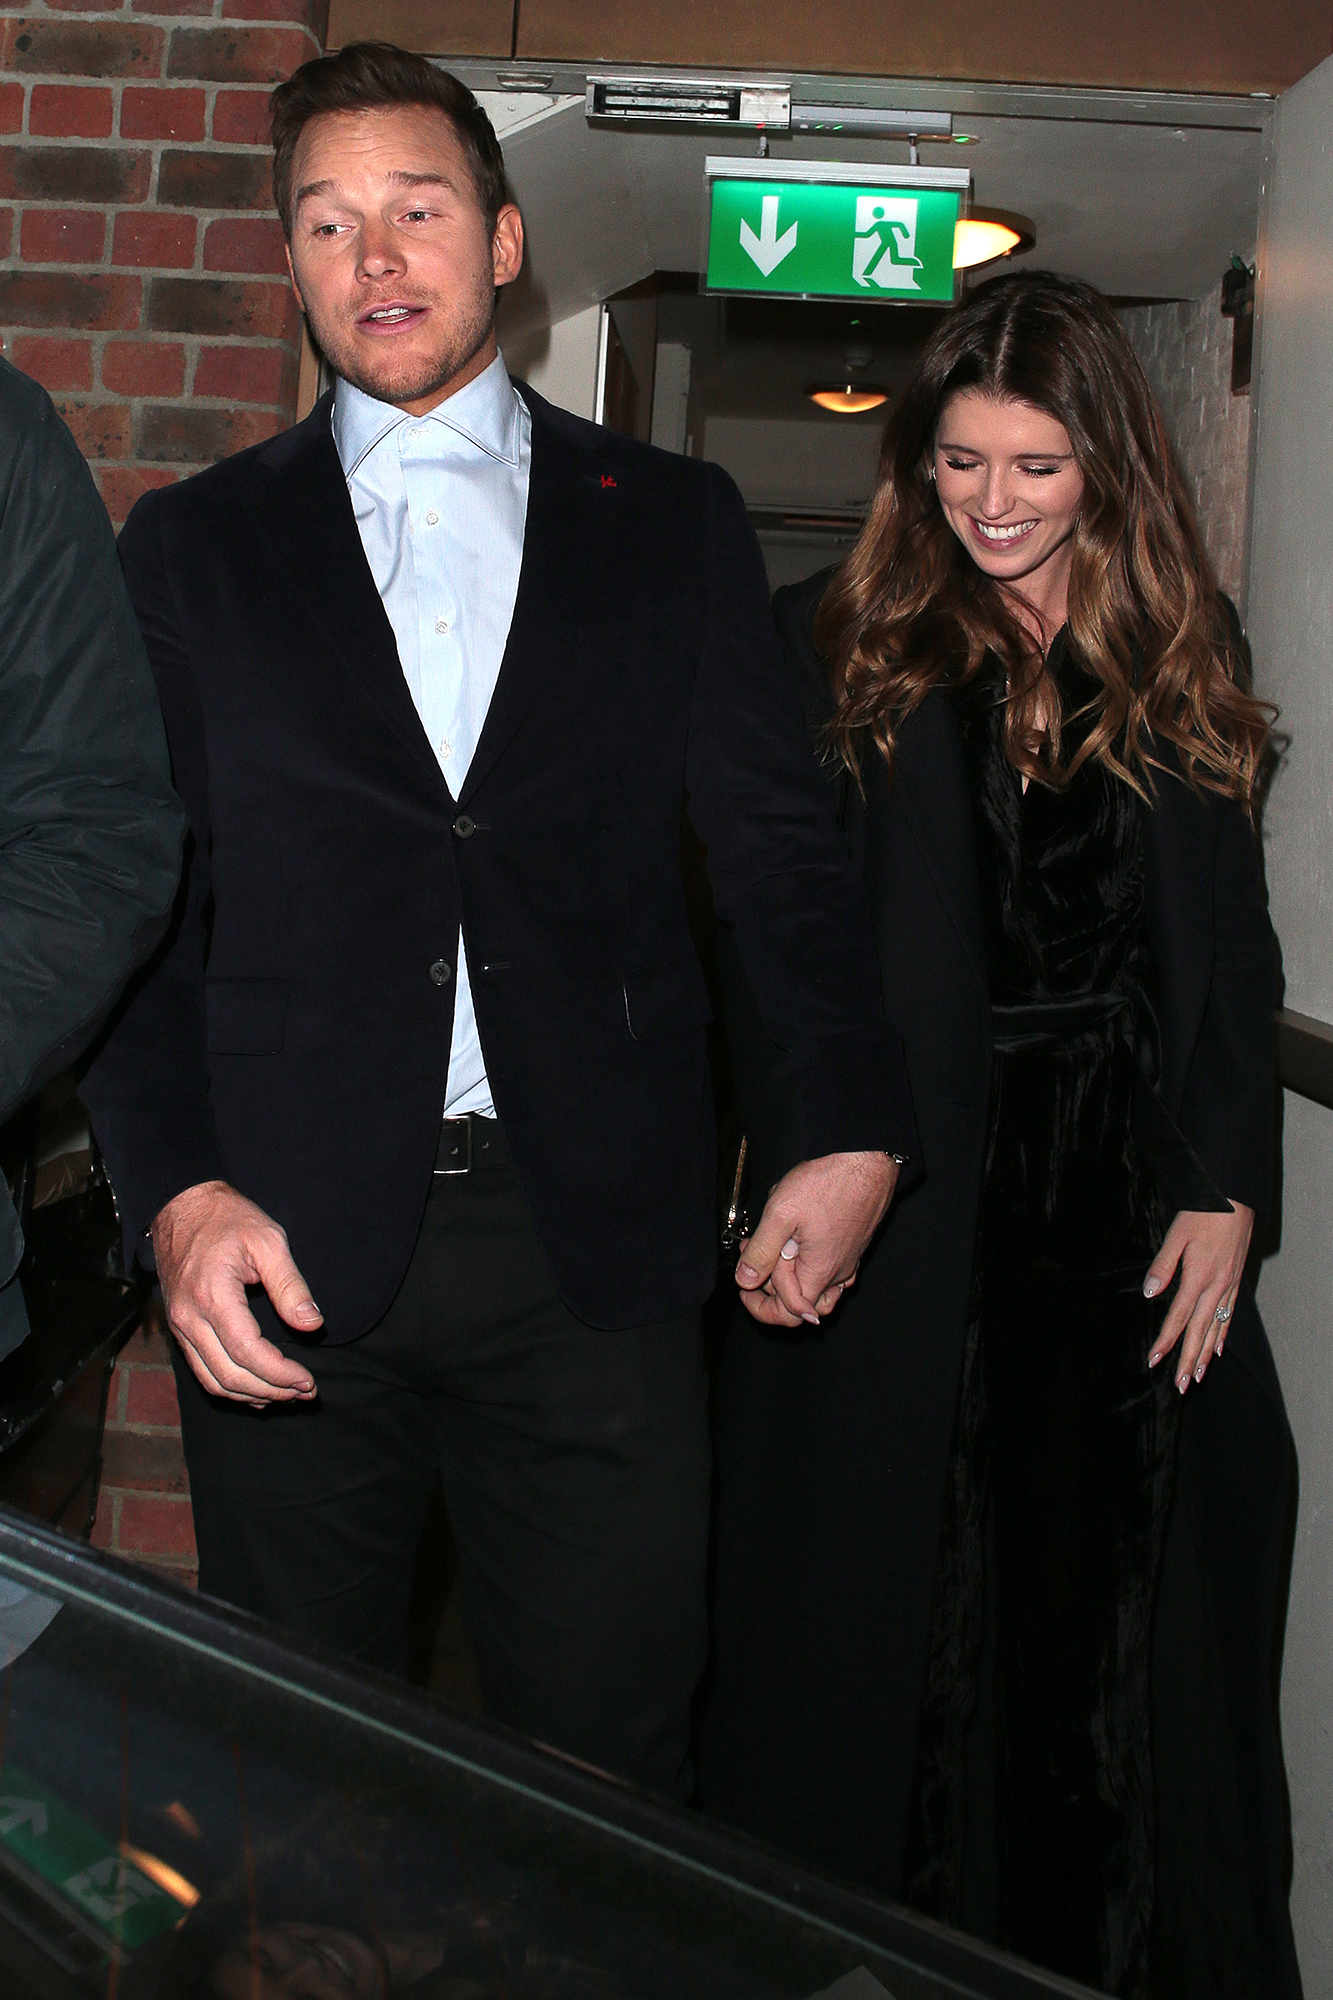 Meghan Markle, Karlie Kloss and More Celebrities Who've Married Into Political Families - The Lego Movie 2: The Second Part actor announced his engagement to Arnold Schwarzenegger's daughter in January 2019 and he exclusively told Us Weekly that the pair are hoping to wed in September 2019 or March 2020.